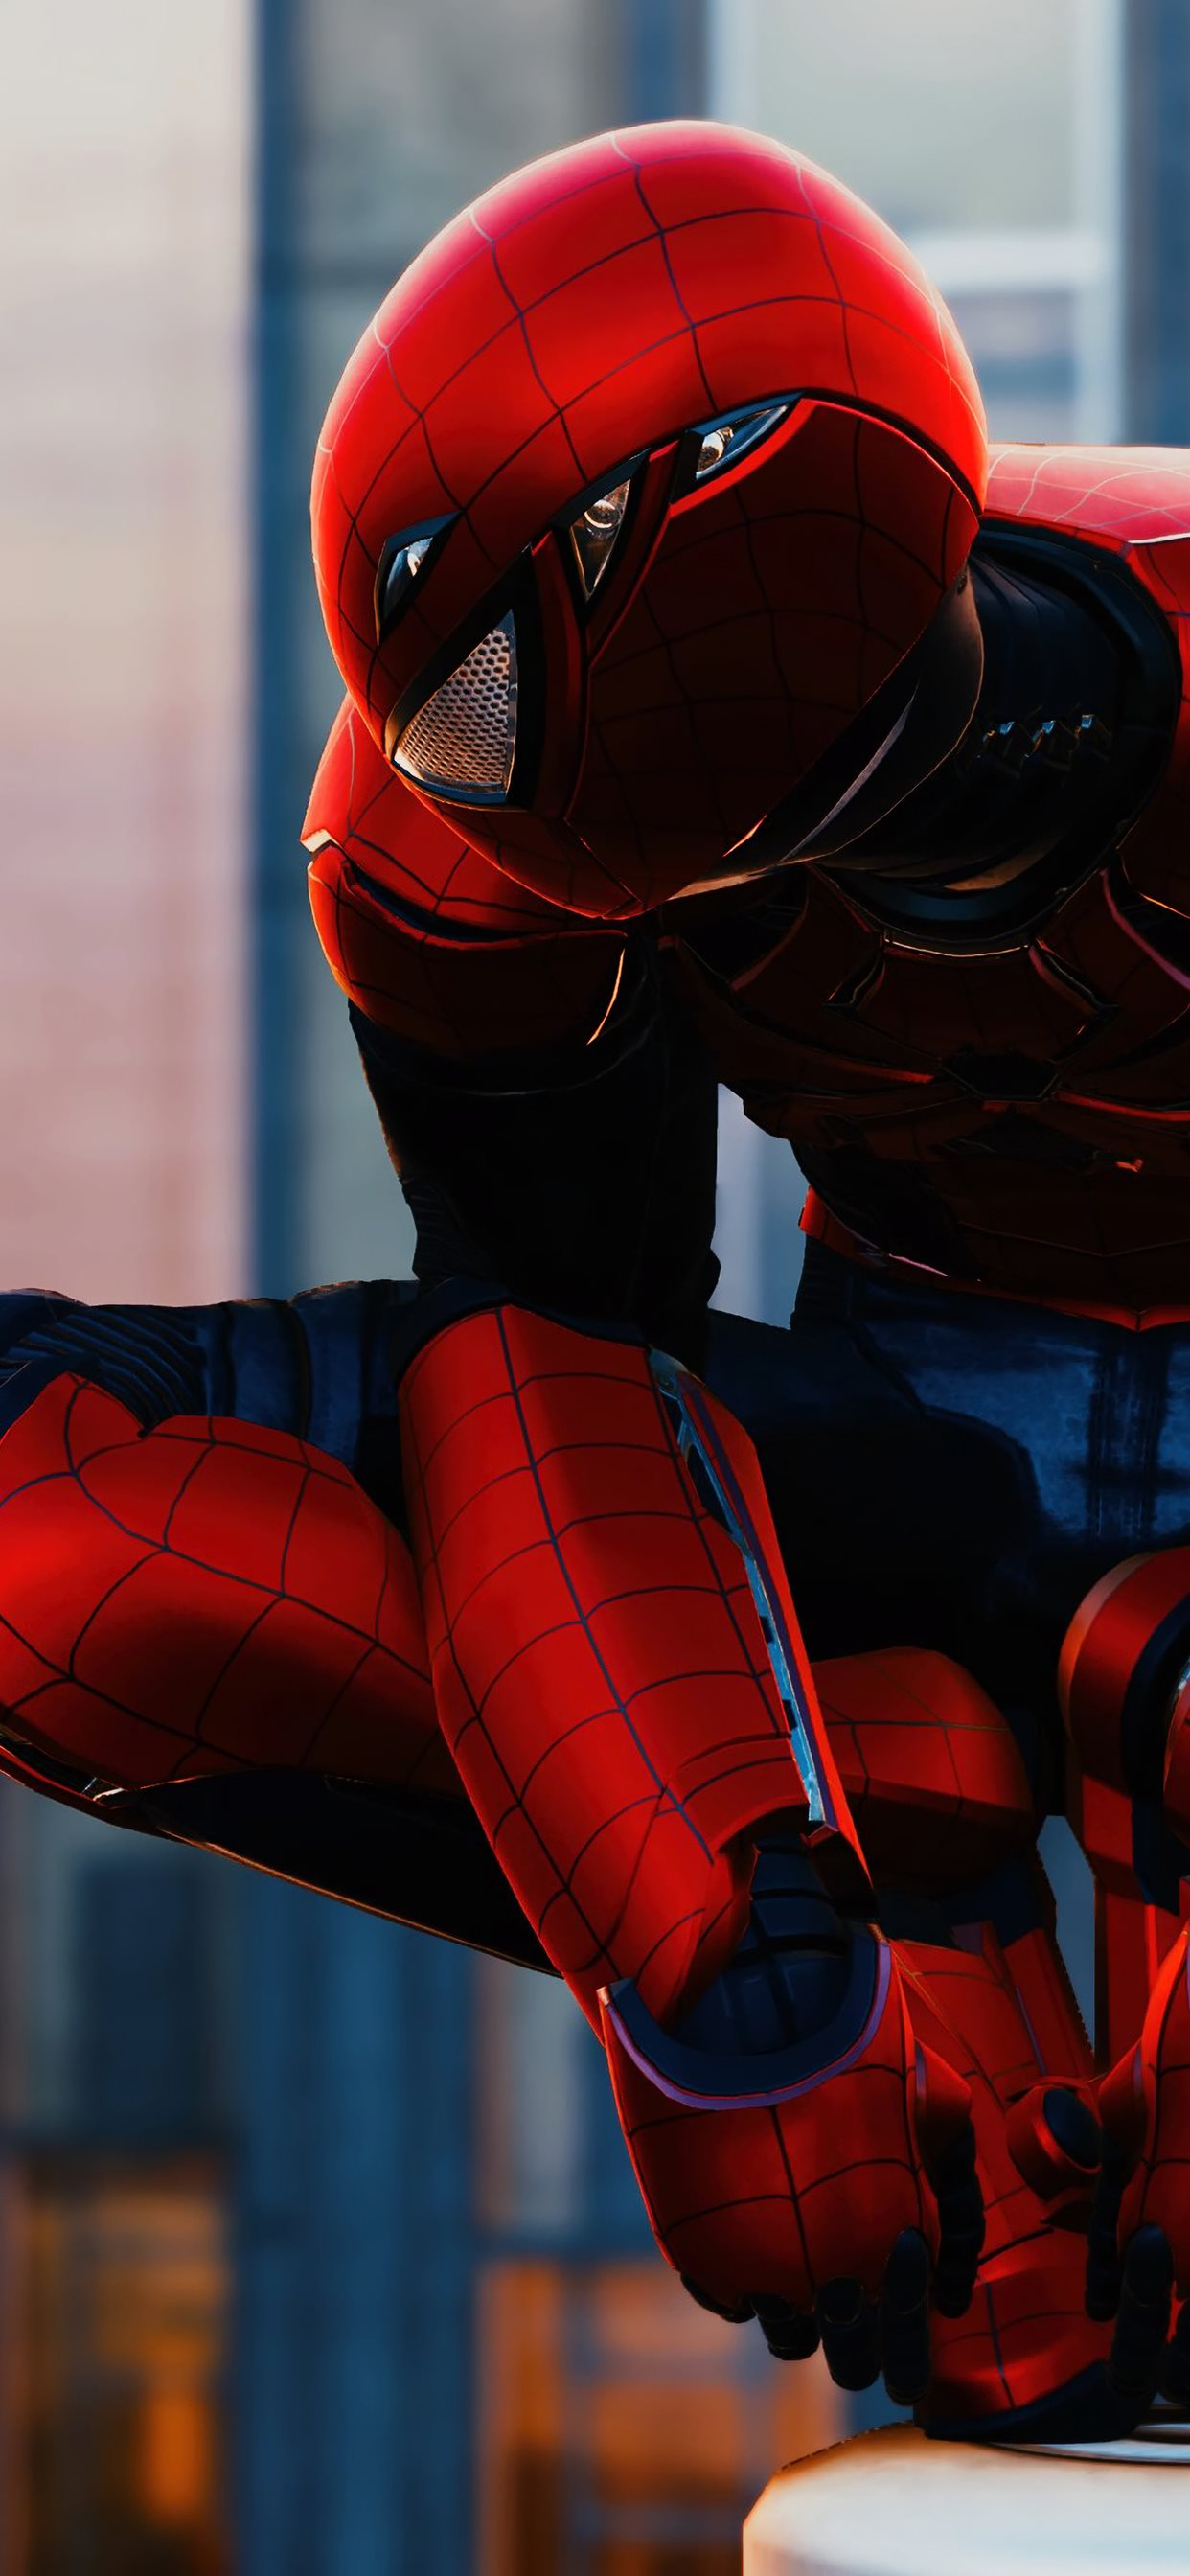 Marvel Spiderman Ps4 Game 4k Iphone 11 Wallpapers Free Download